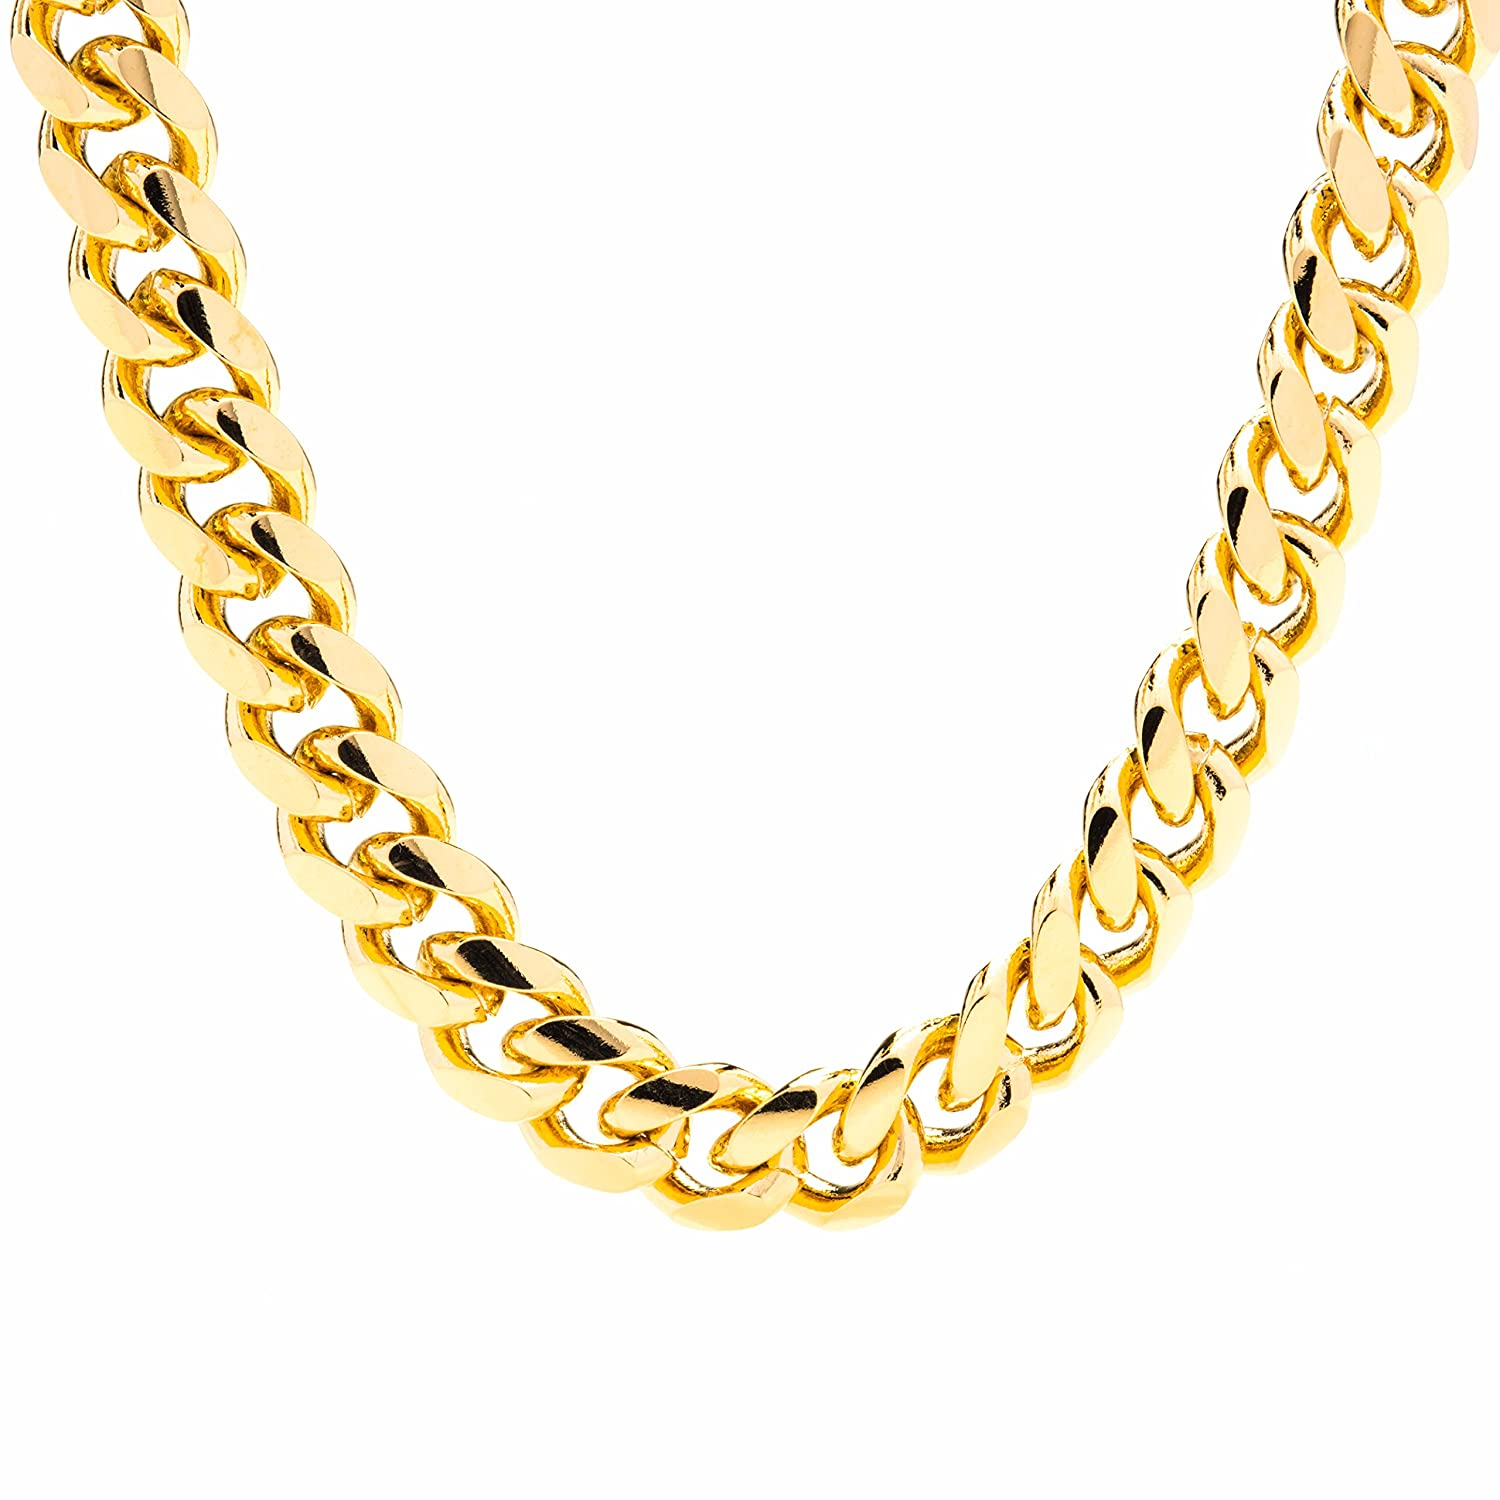 Lifetime Jewelry Cuban Link Chain 11MM Round 24K Gold Plated Thick Necklace Guaranteed for Life Available from 18-36 Inches Lifetime Products Group NA